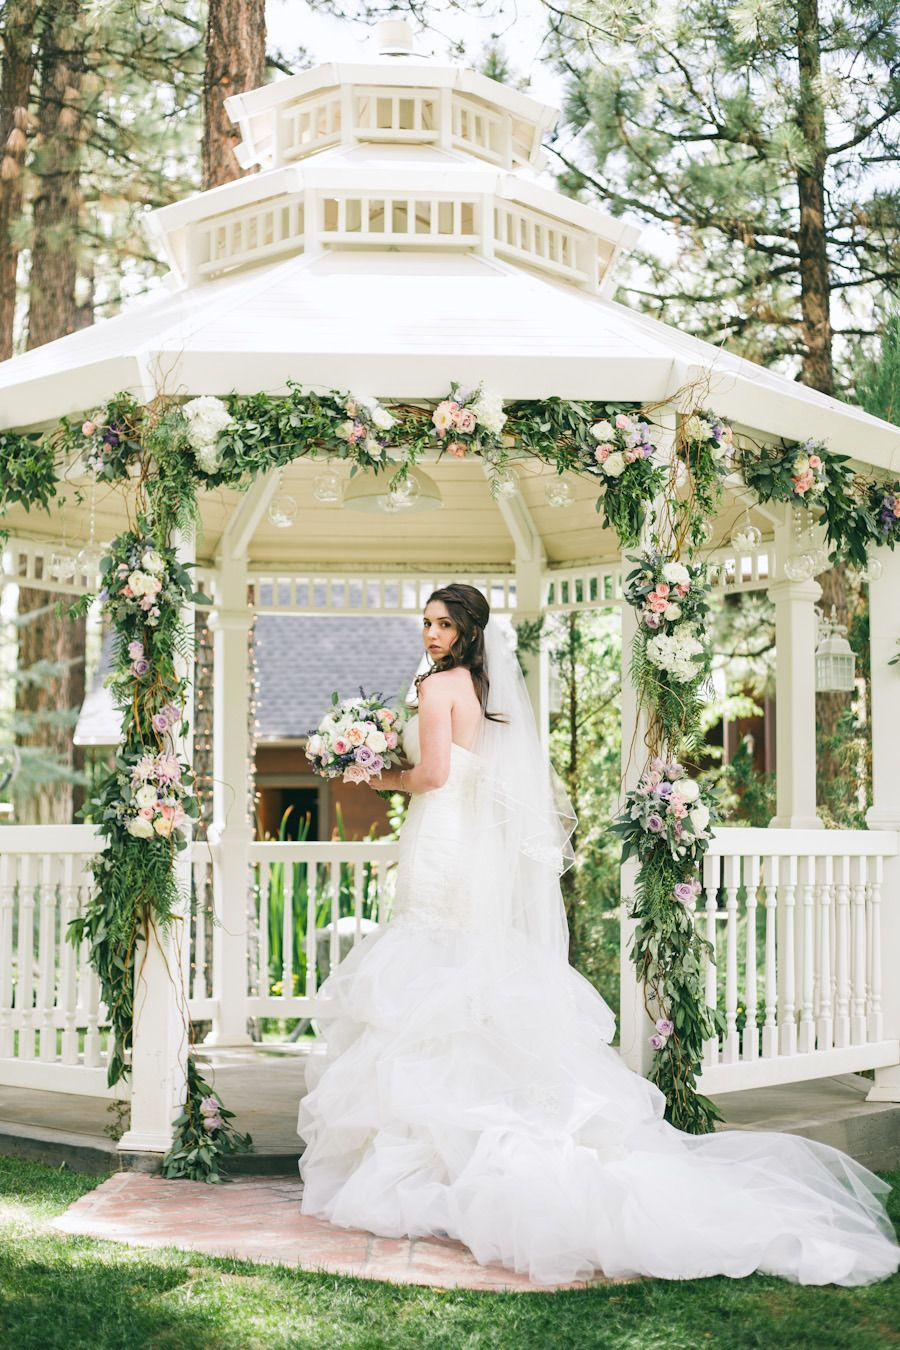 Whimsical + Elegant Tea Party Wedding. Gazebo Wedding DecorationsWedding ...